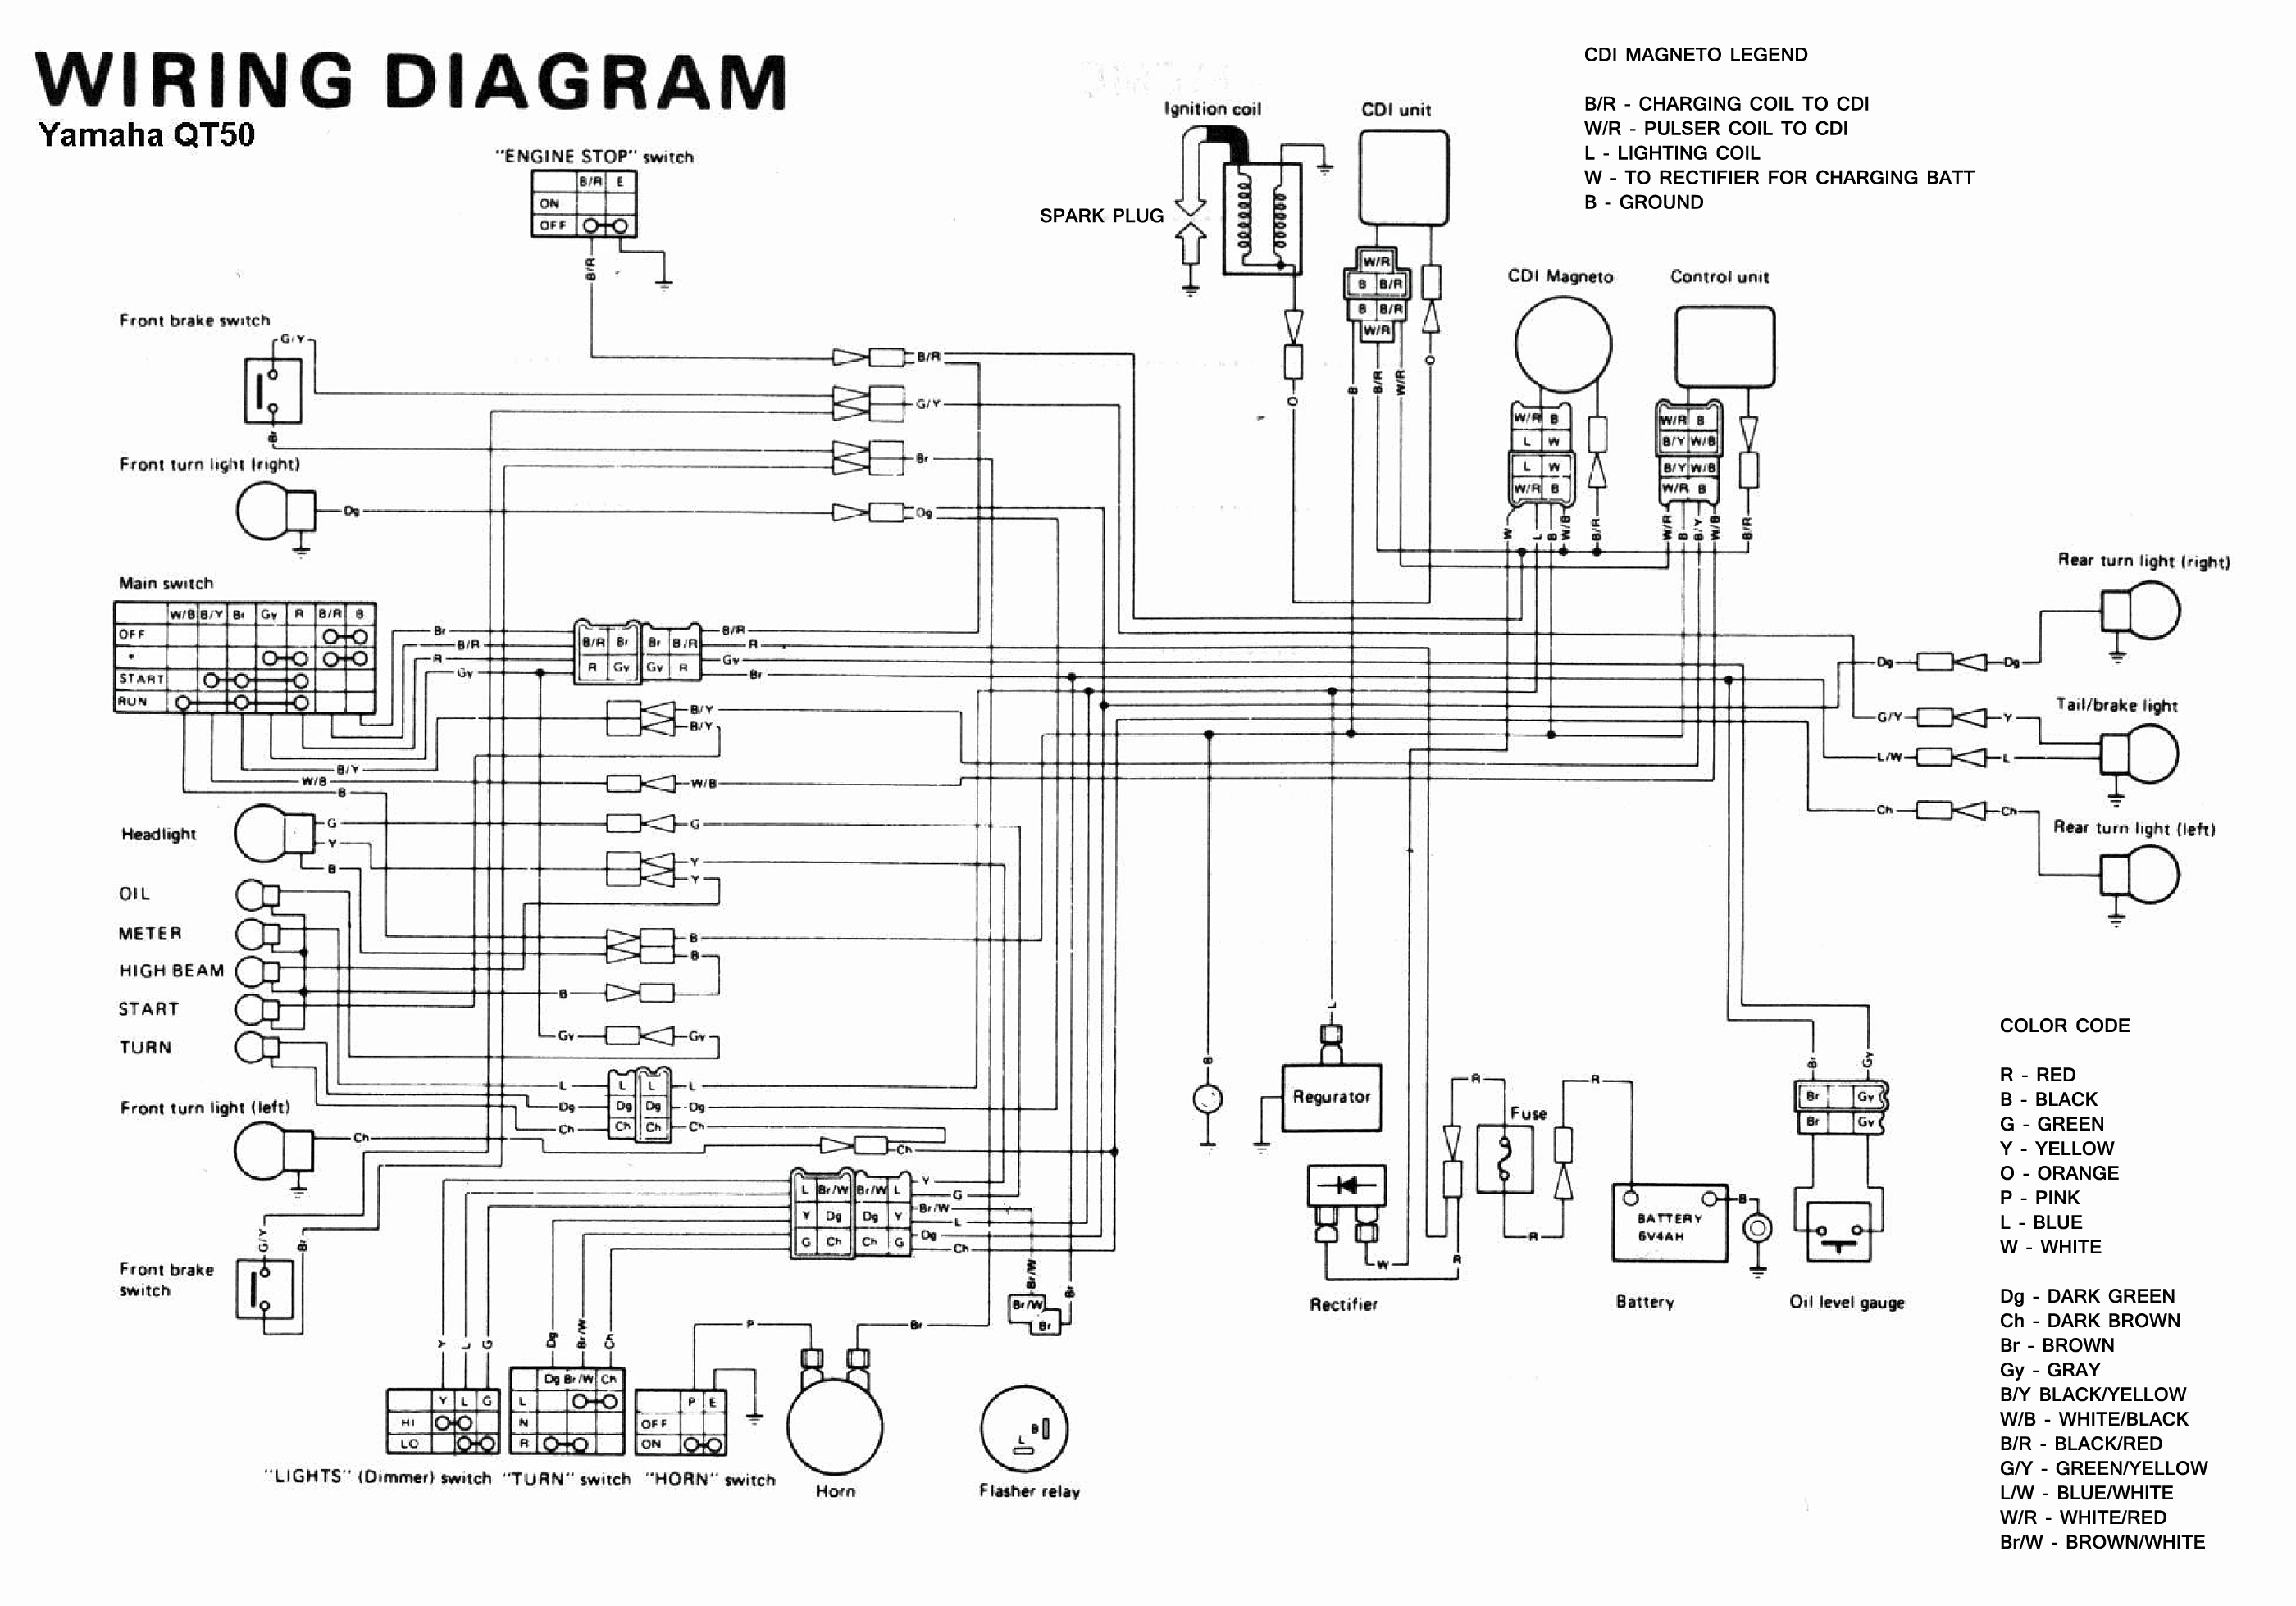 Wiring Diagrams Yamaha Atv : Free yamaha warrior atv wiring diagrams